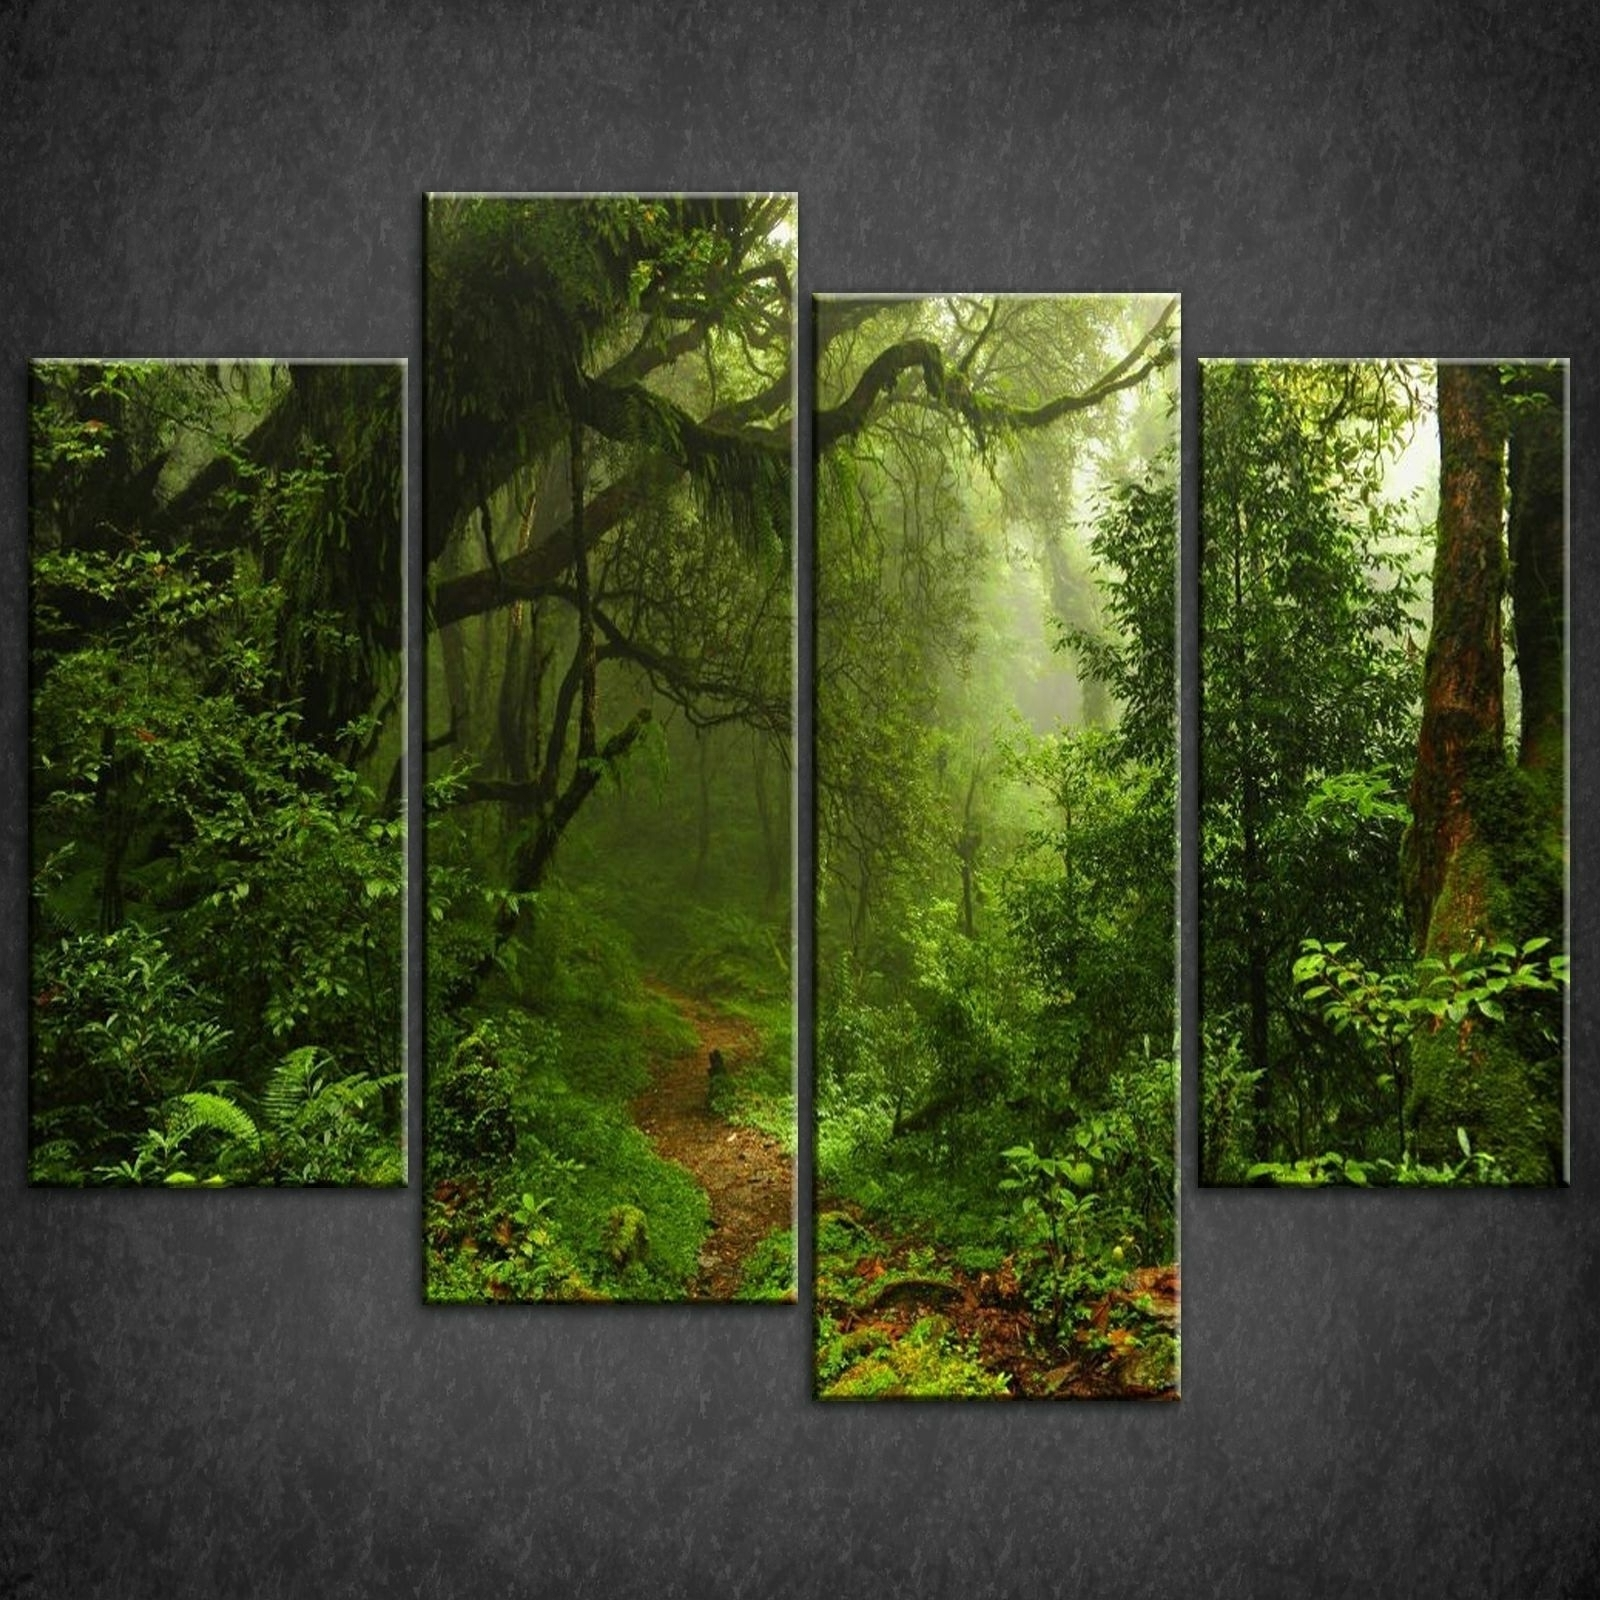 Nature Canvas Wall Art Pertaining To Current Wall Art Design Ideas Intended For Nature Wall Art (Photo 6 of 20)